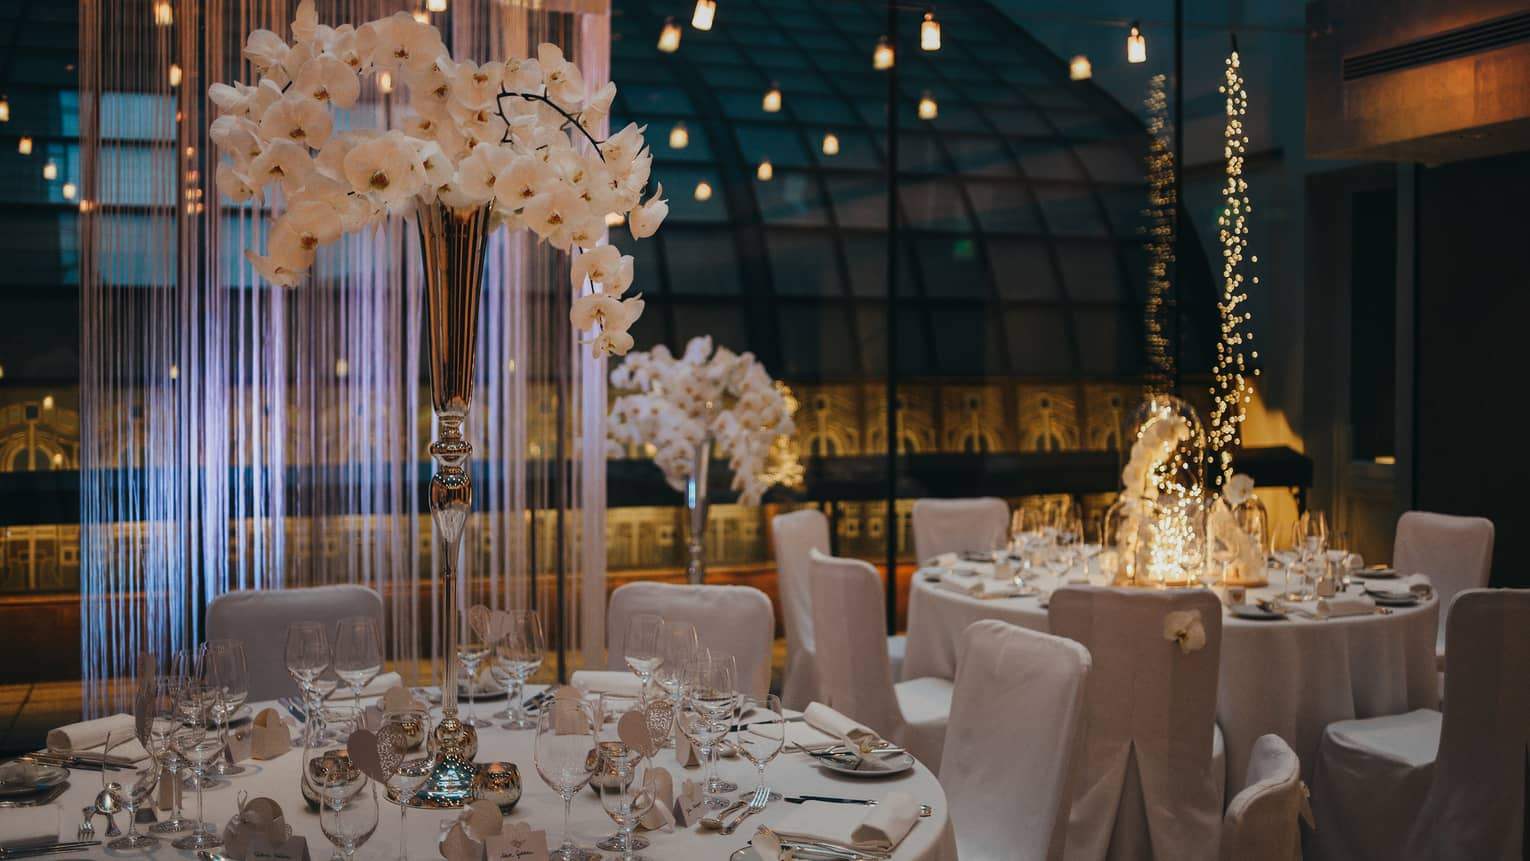 White dining tables and chairs with vase of orchids beside glass wall and reflecting lights